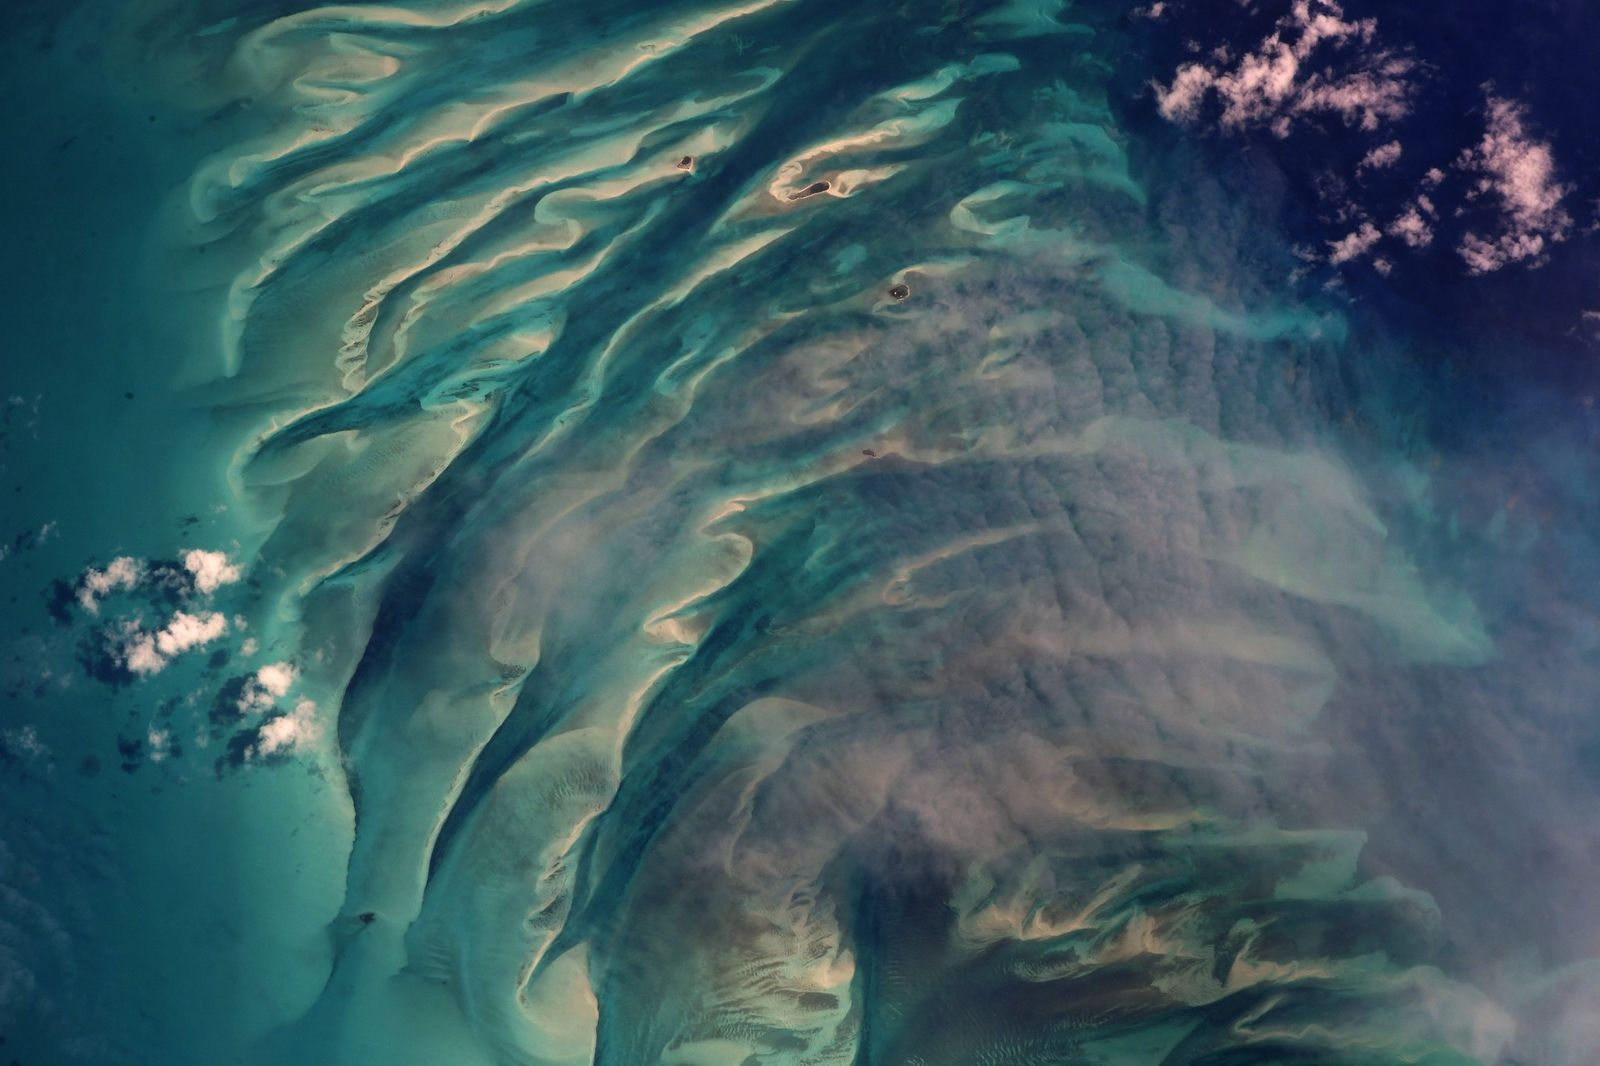 The glorious banks and cays of #Eleuthera #Bahamas (Photo & Caption Ricky Arnold, NASA)